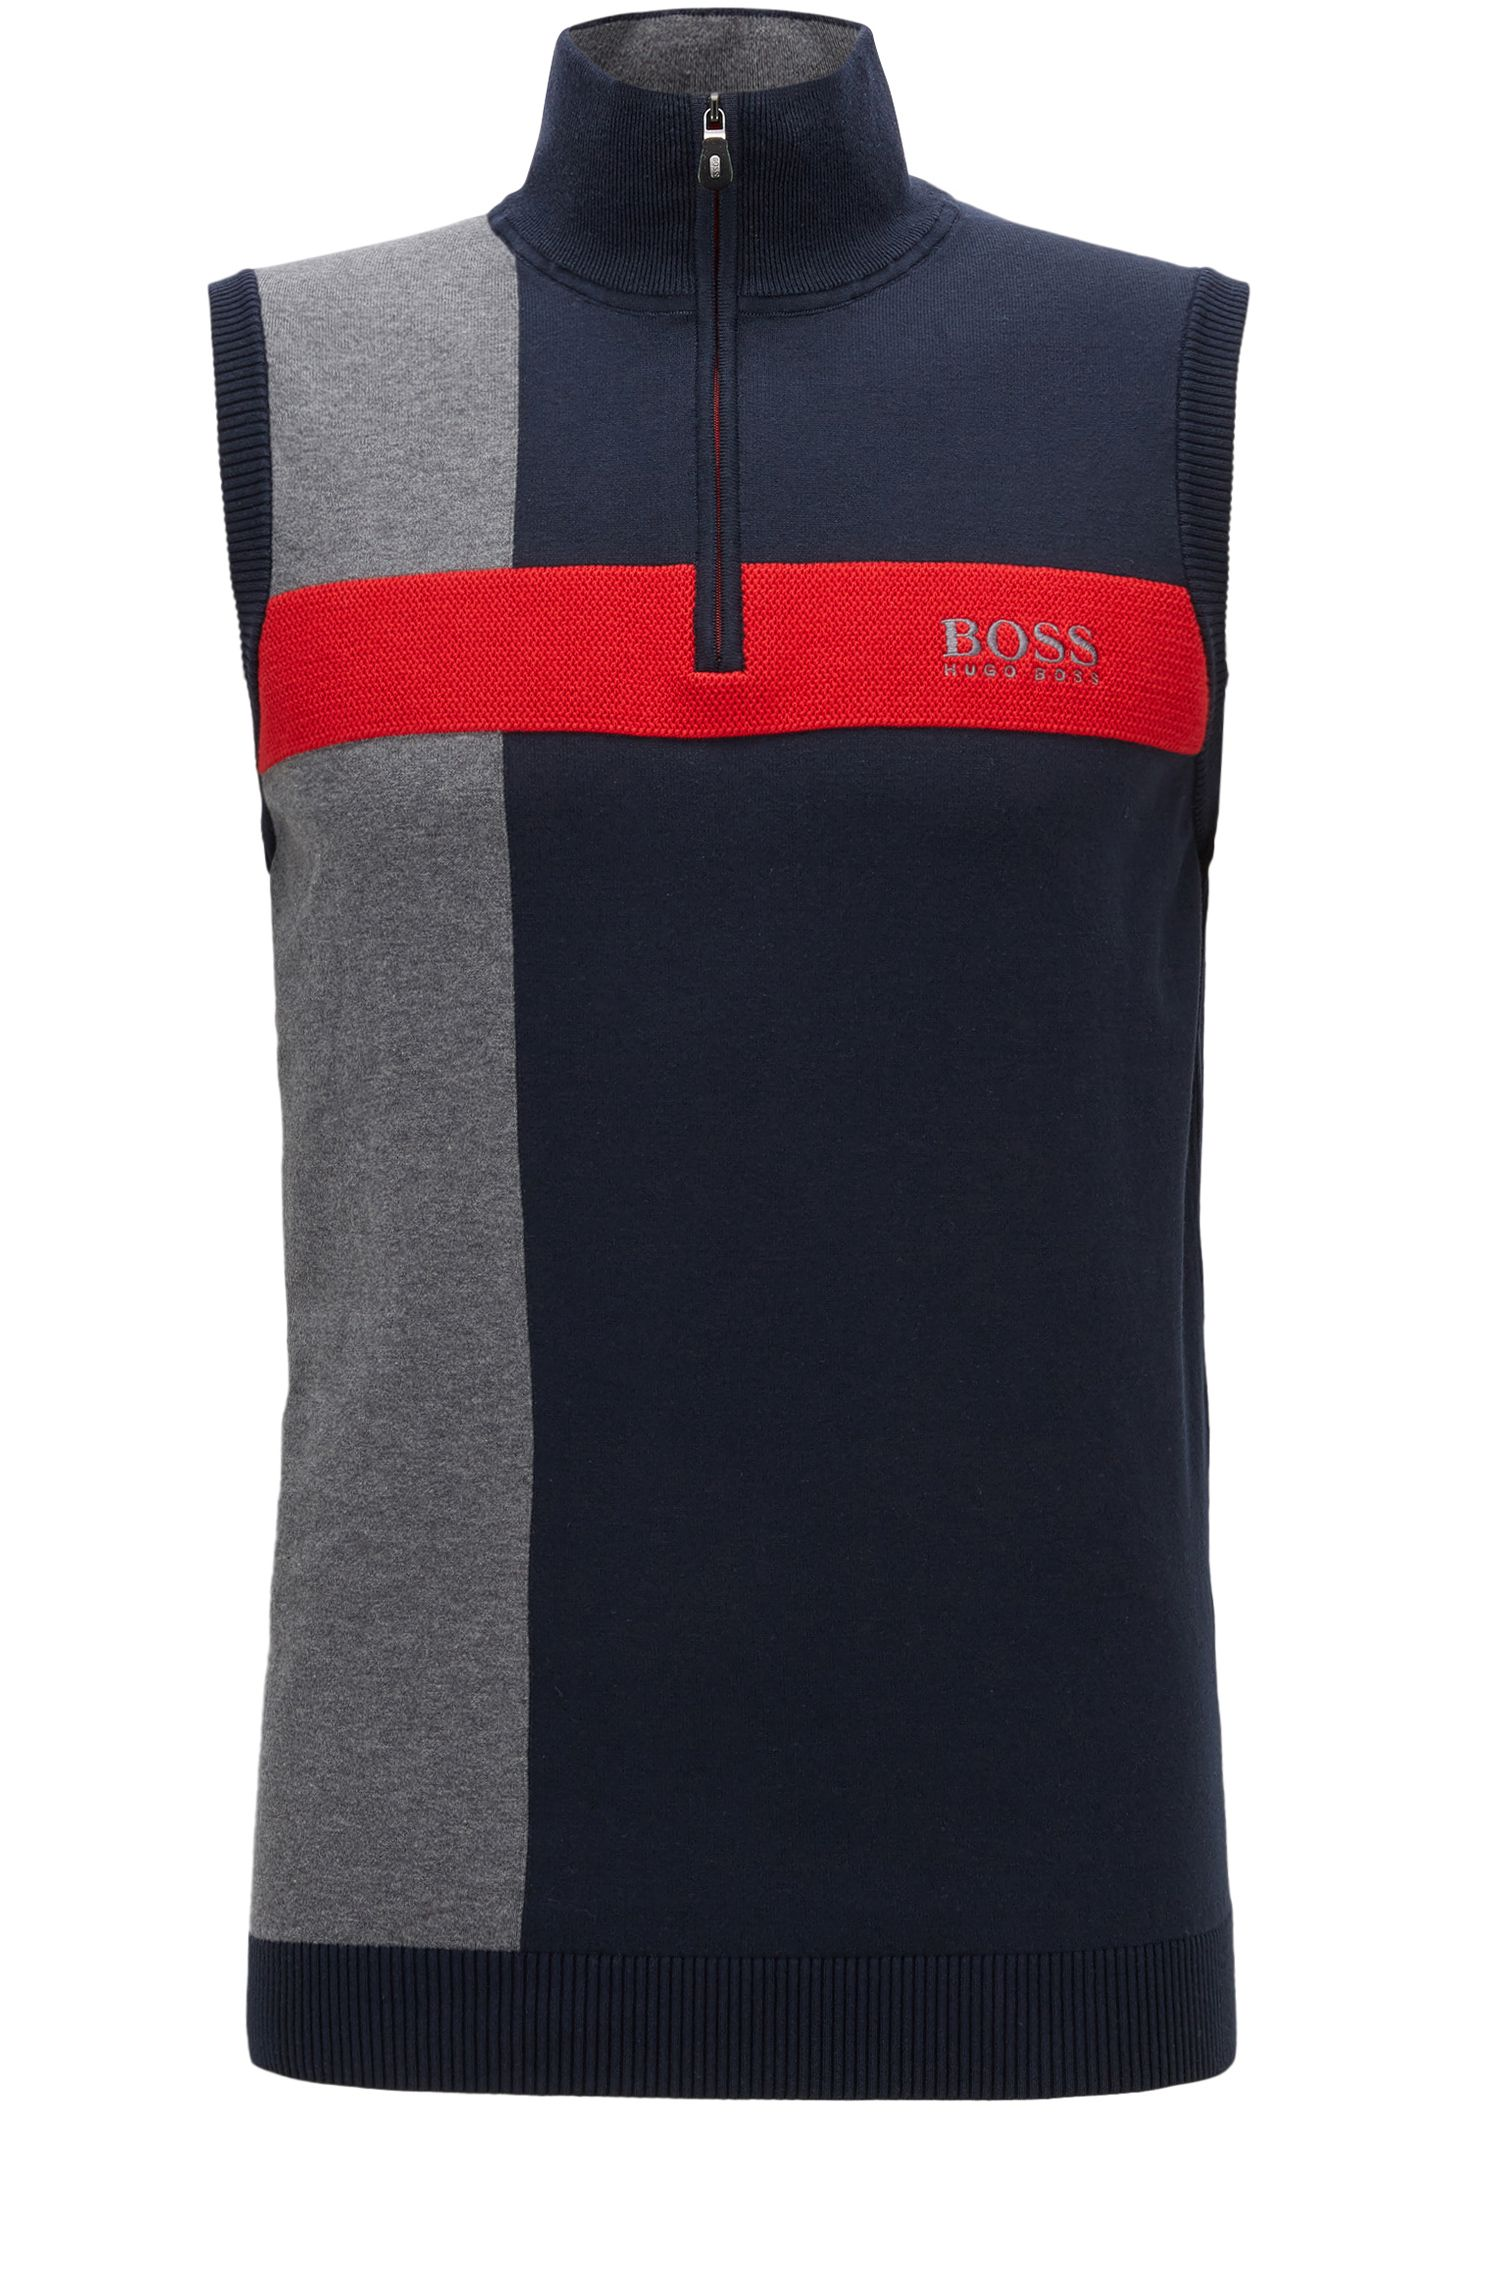 'Zagi Pro W17' | Coloblocked Stretch Cotton Sweater Vest, Dark Blue